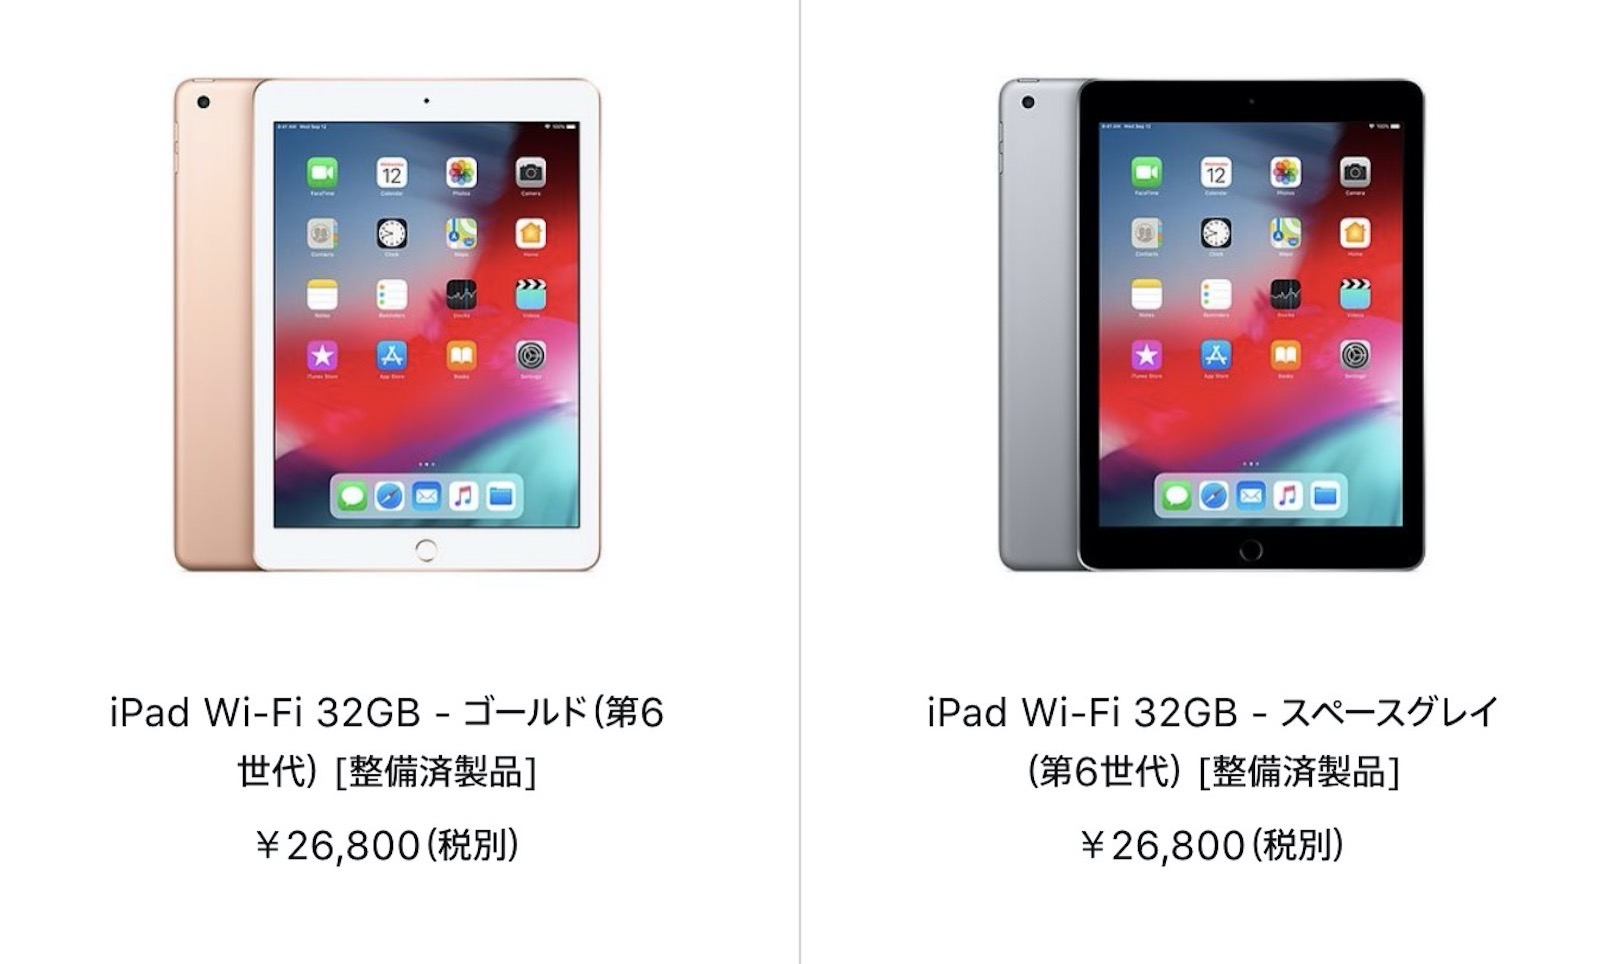 Ipad iwifi refurbished